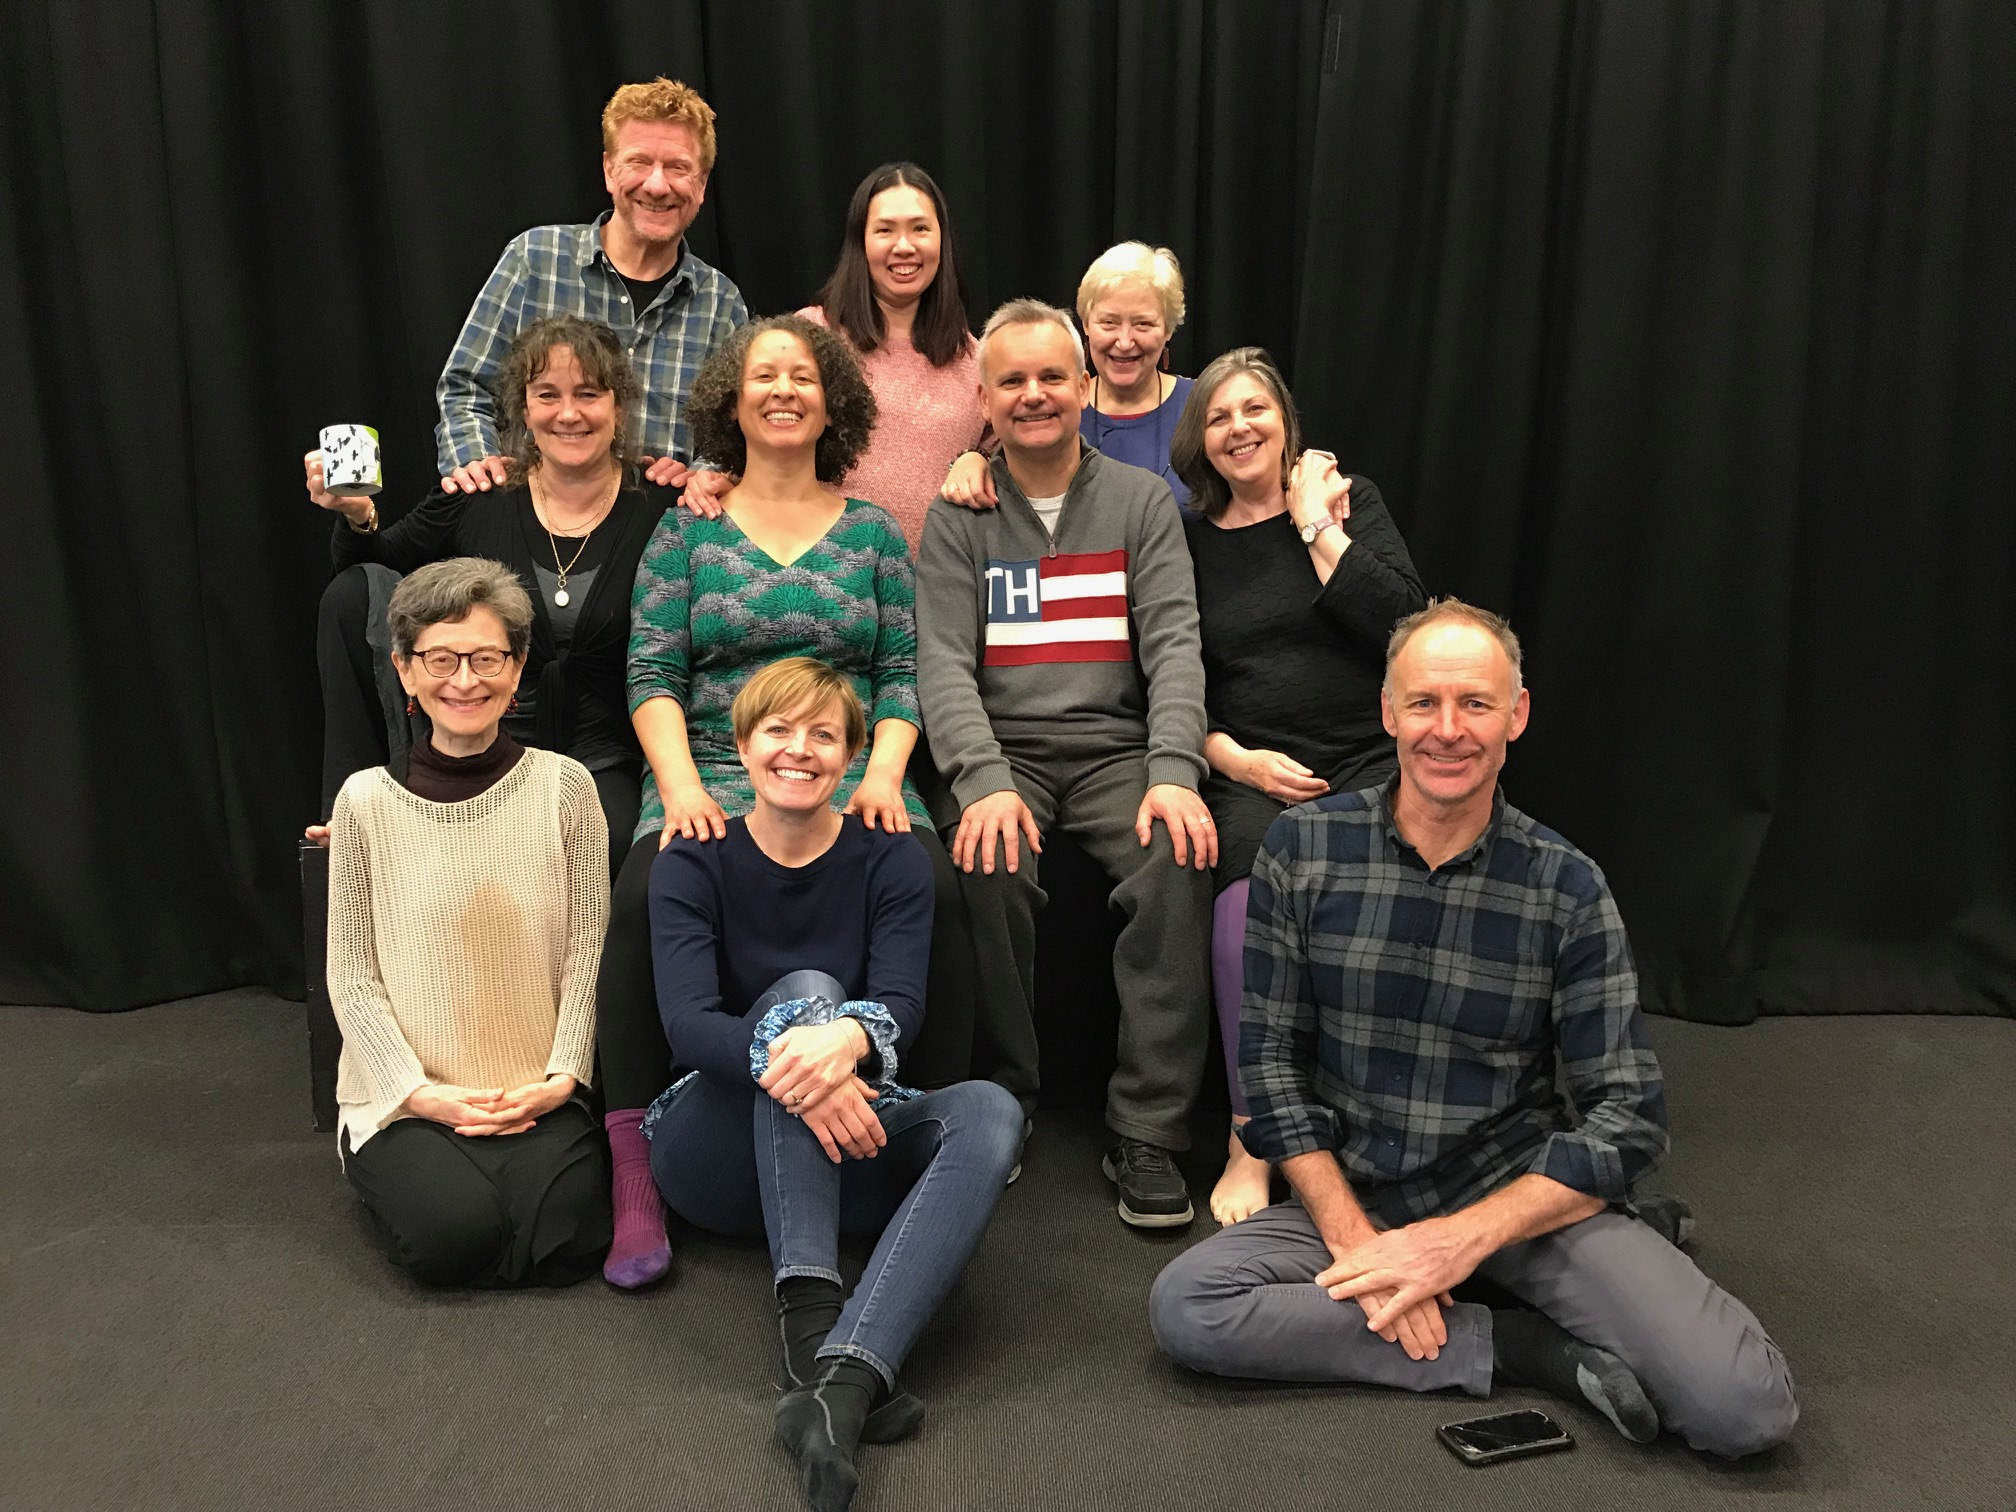 Greetings from us all to you…..we were at the SPT UK trainers meeting on 8 April 2019 - from upper left to right: Steve Nash, Agnes Law, Di Adderley; middle row left to right: Alison Fairlove, Rose Thorn, Simon Floodgate, Amanda Brown; bottom row: Veronica Needa, Davina Holmes, Andrew Gray.